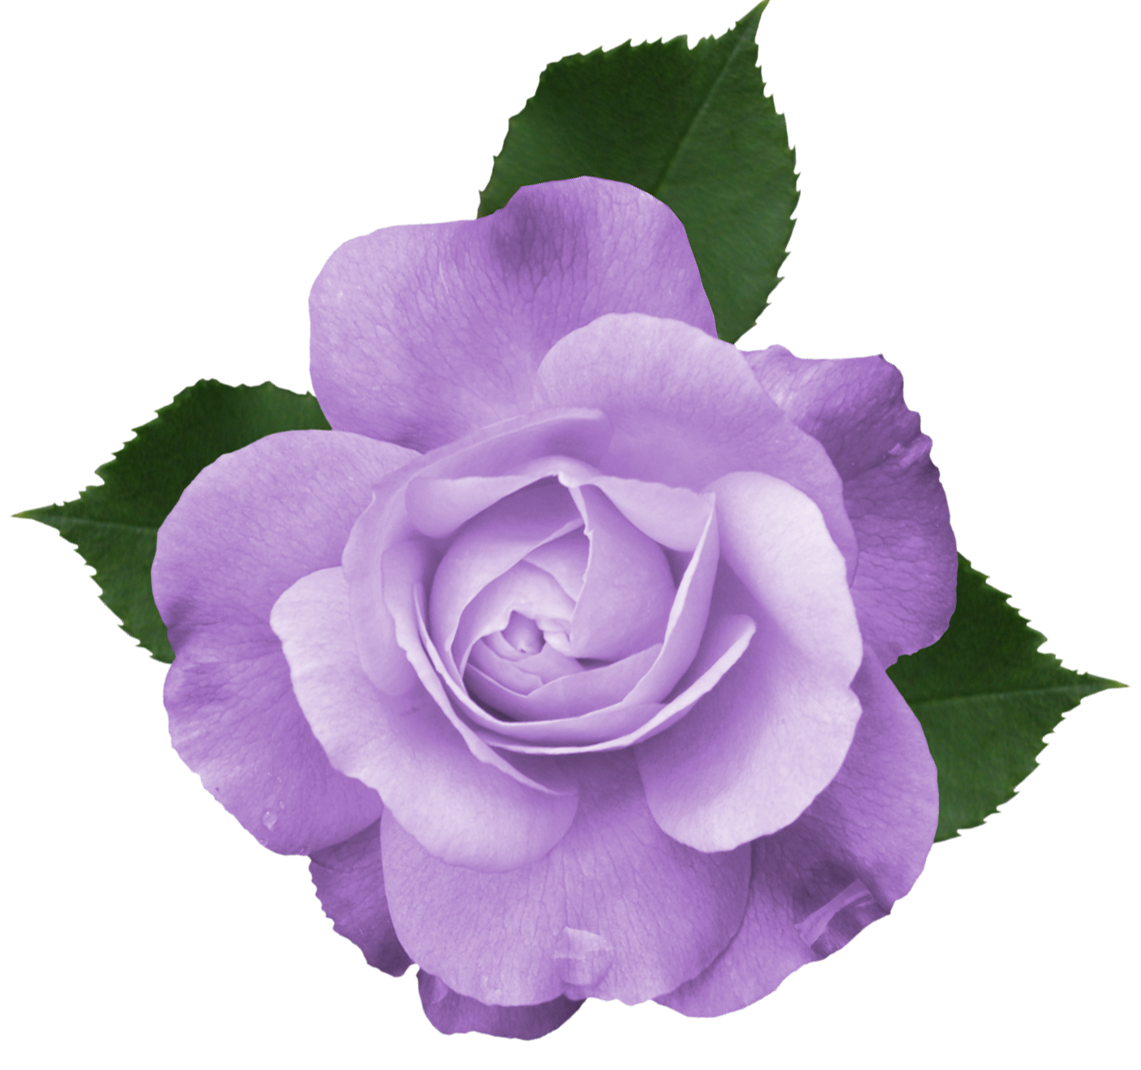 Lilac flower png. Beautiful transparent rose picture